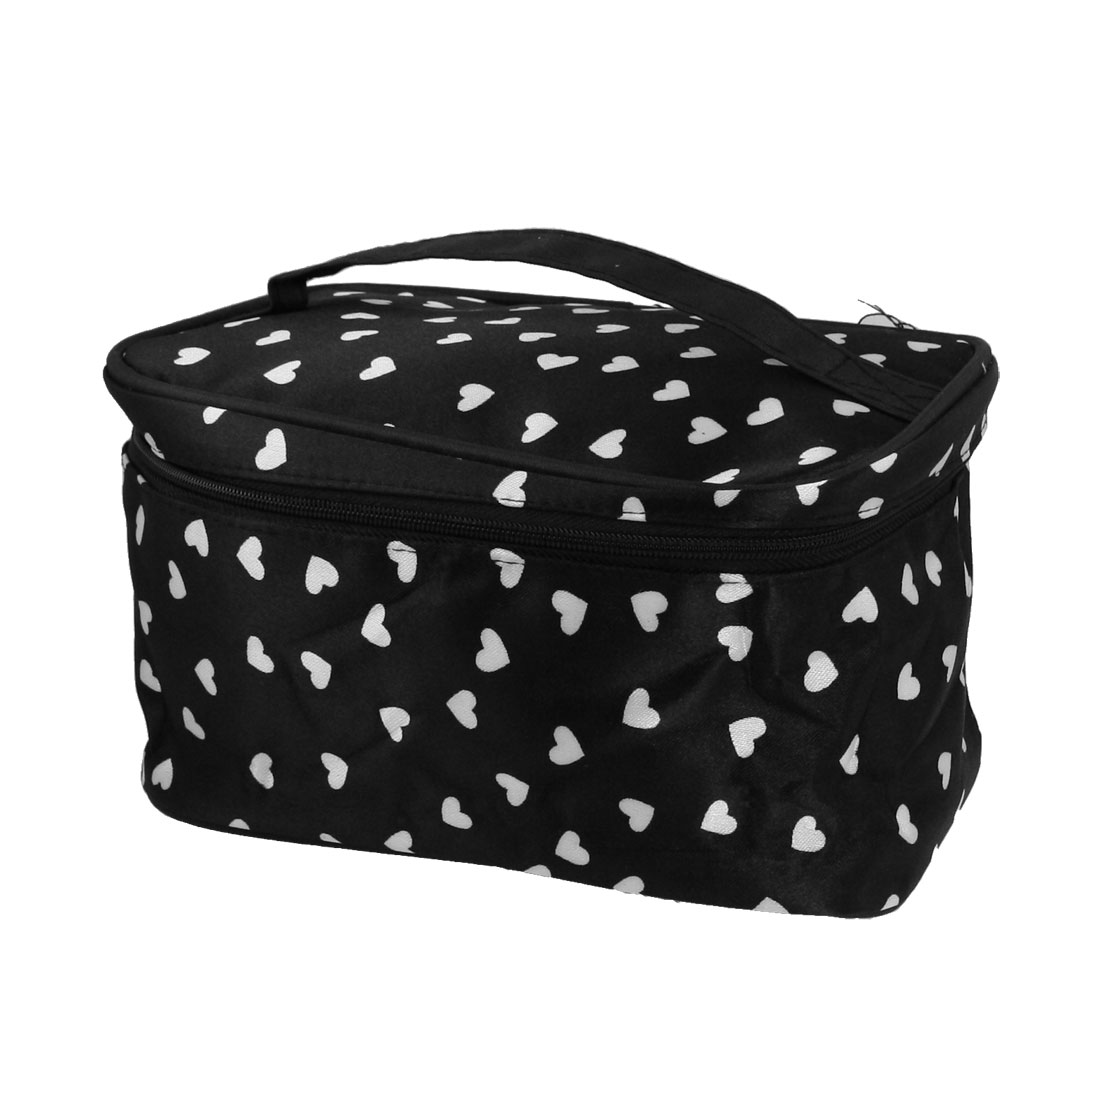 Woman Heart Pattern Zippered Makeup Cosmetic Hand Bag Black